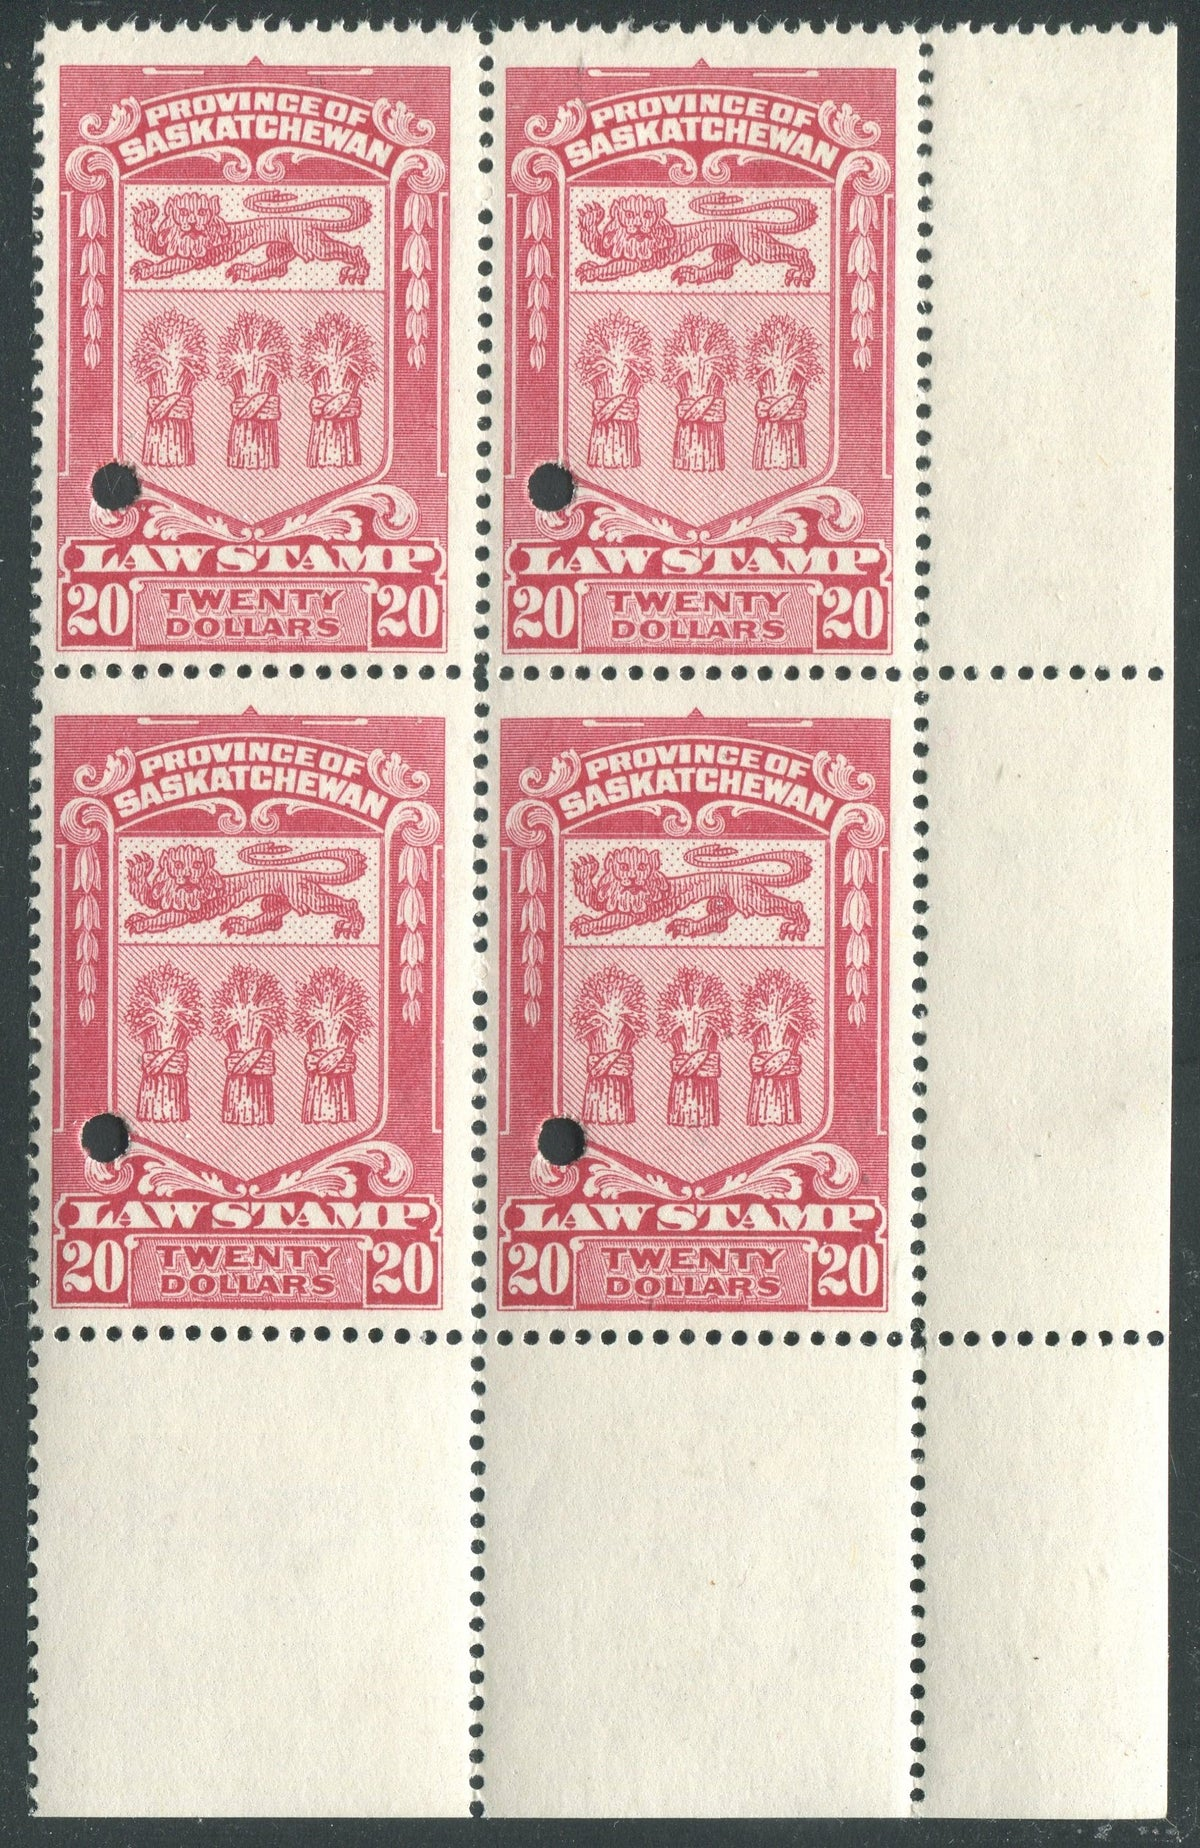 0066SL1711 - SL66 - Specimen Block of 4